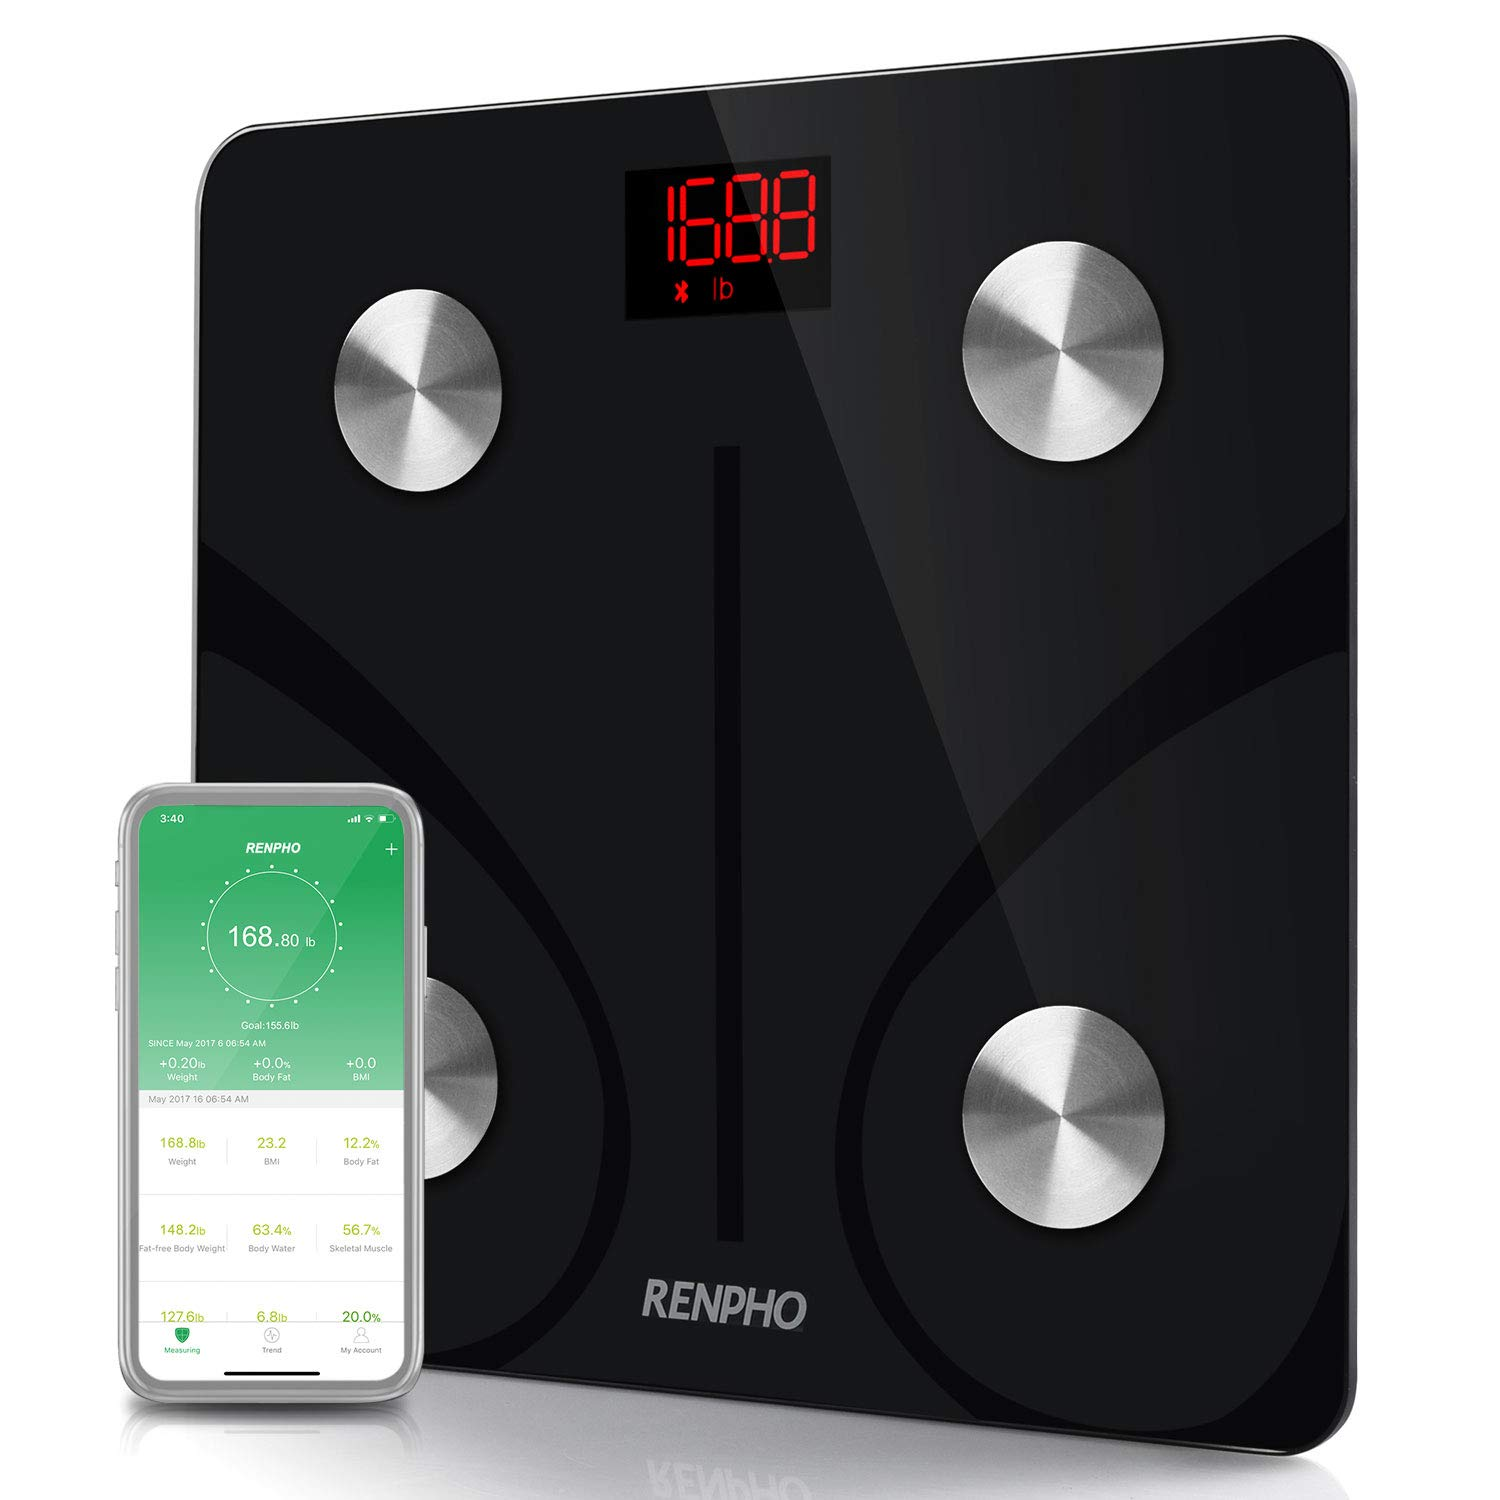 RENPHO Bluetooth Body Fat Scale Smart BMI Scale Digital Bathroom Wireless  Weight Scale, Body